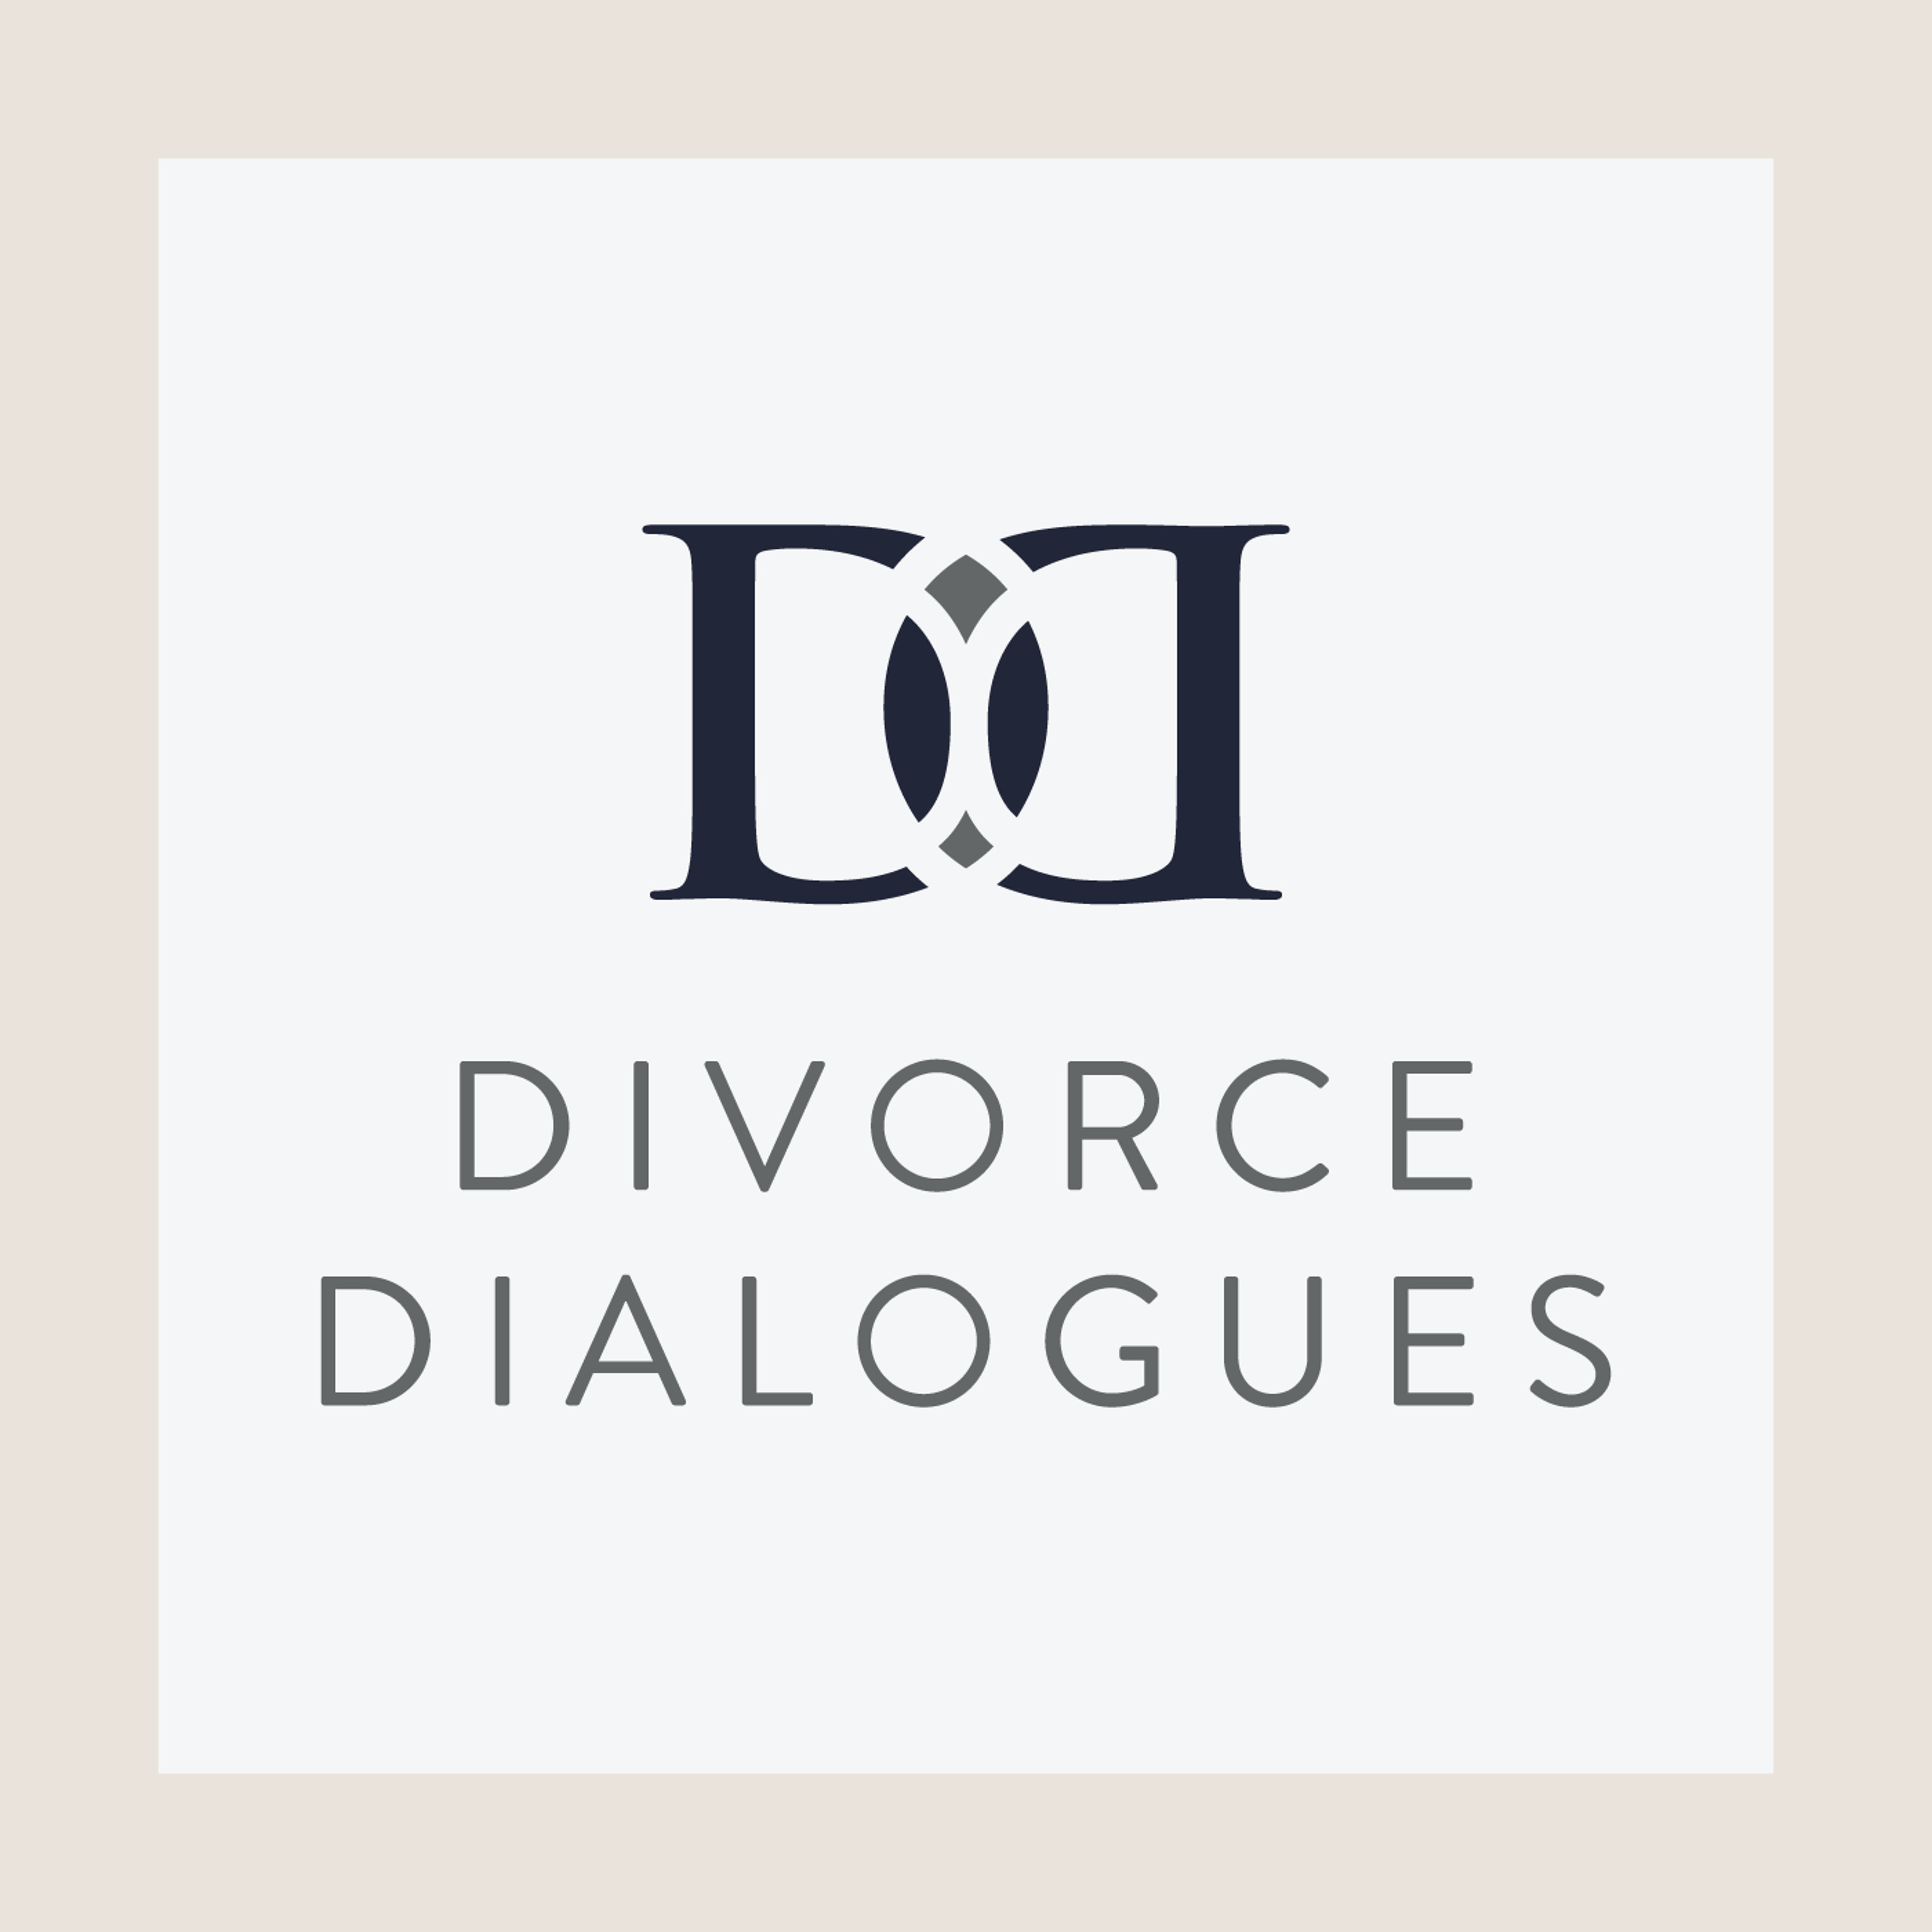 Divorce Dialogues - The Nuances of a High Net Worth Divorce with Michelle Smith